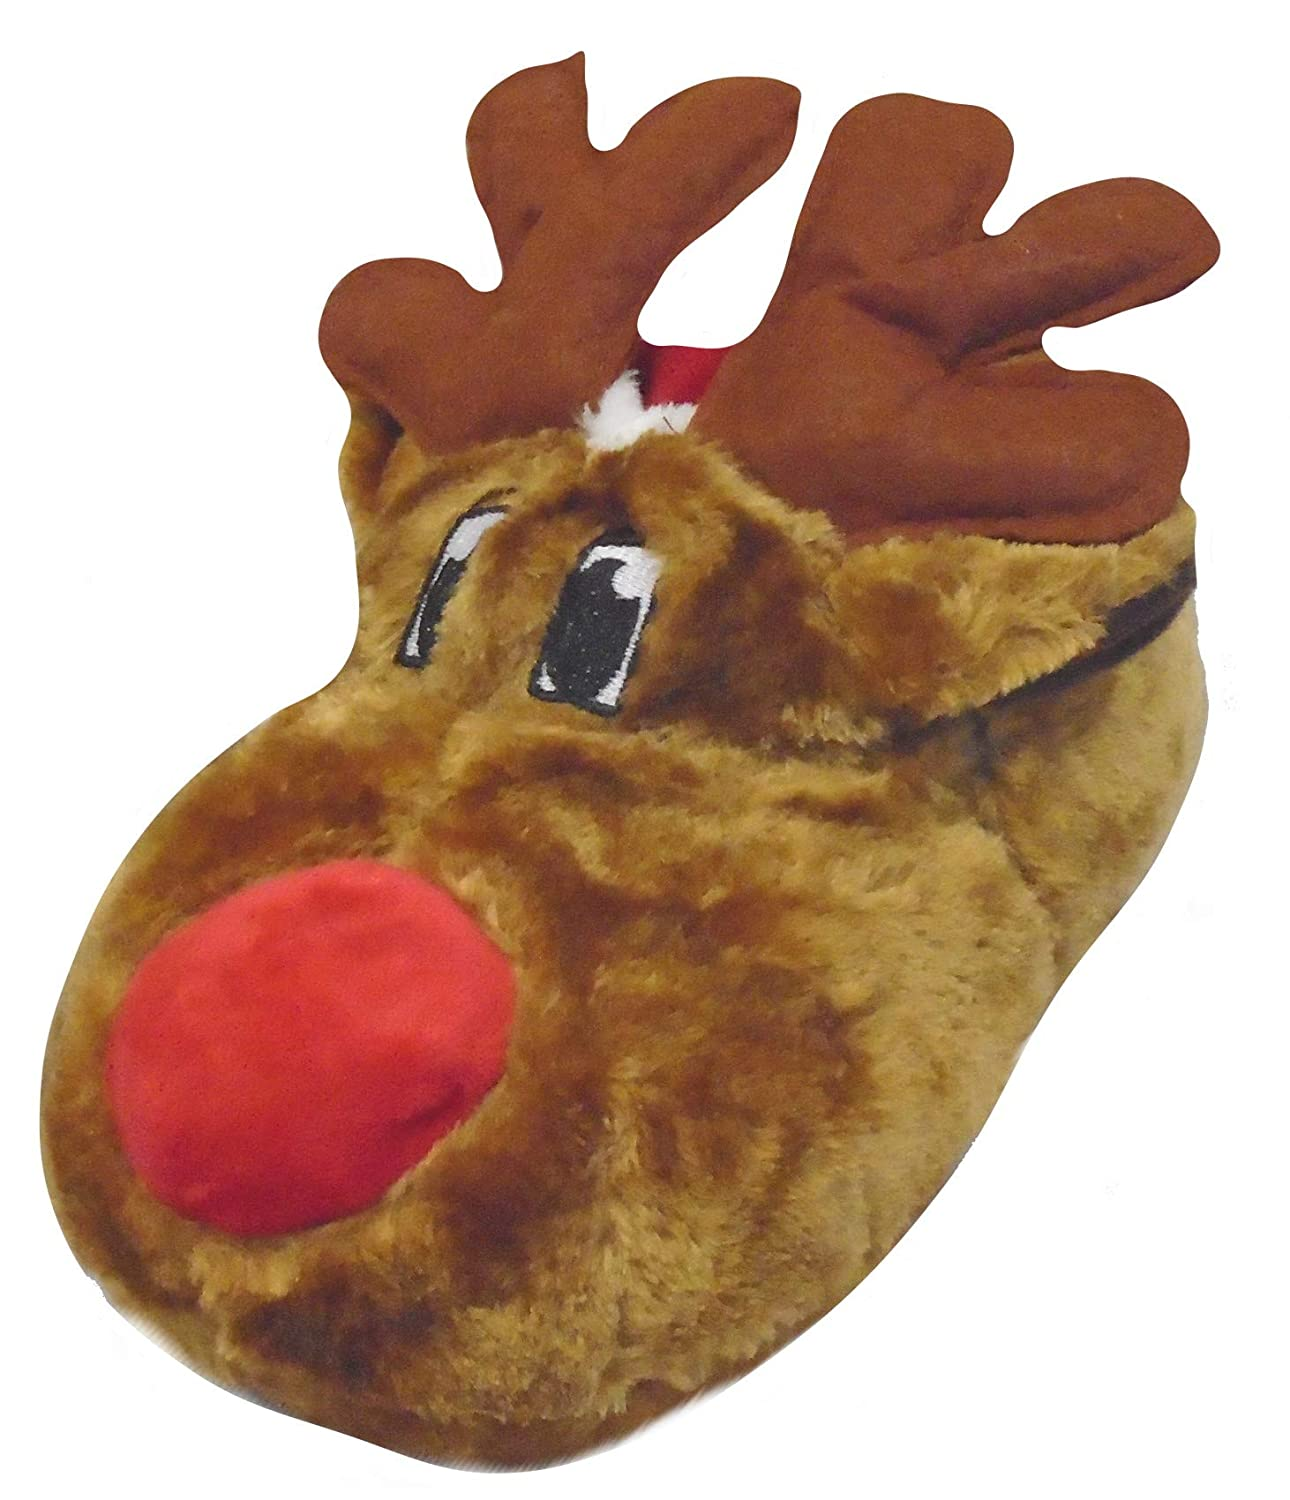 Amazon.com: Adults Rudolph Reindeer 3D Novelty Slippers 5-6 (EUR 37-38): Shoes